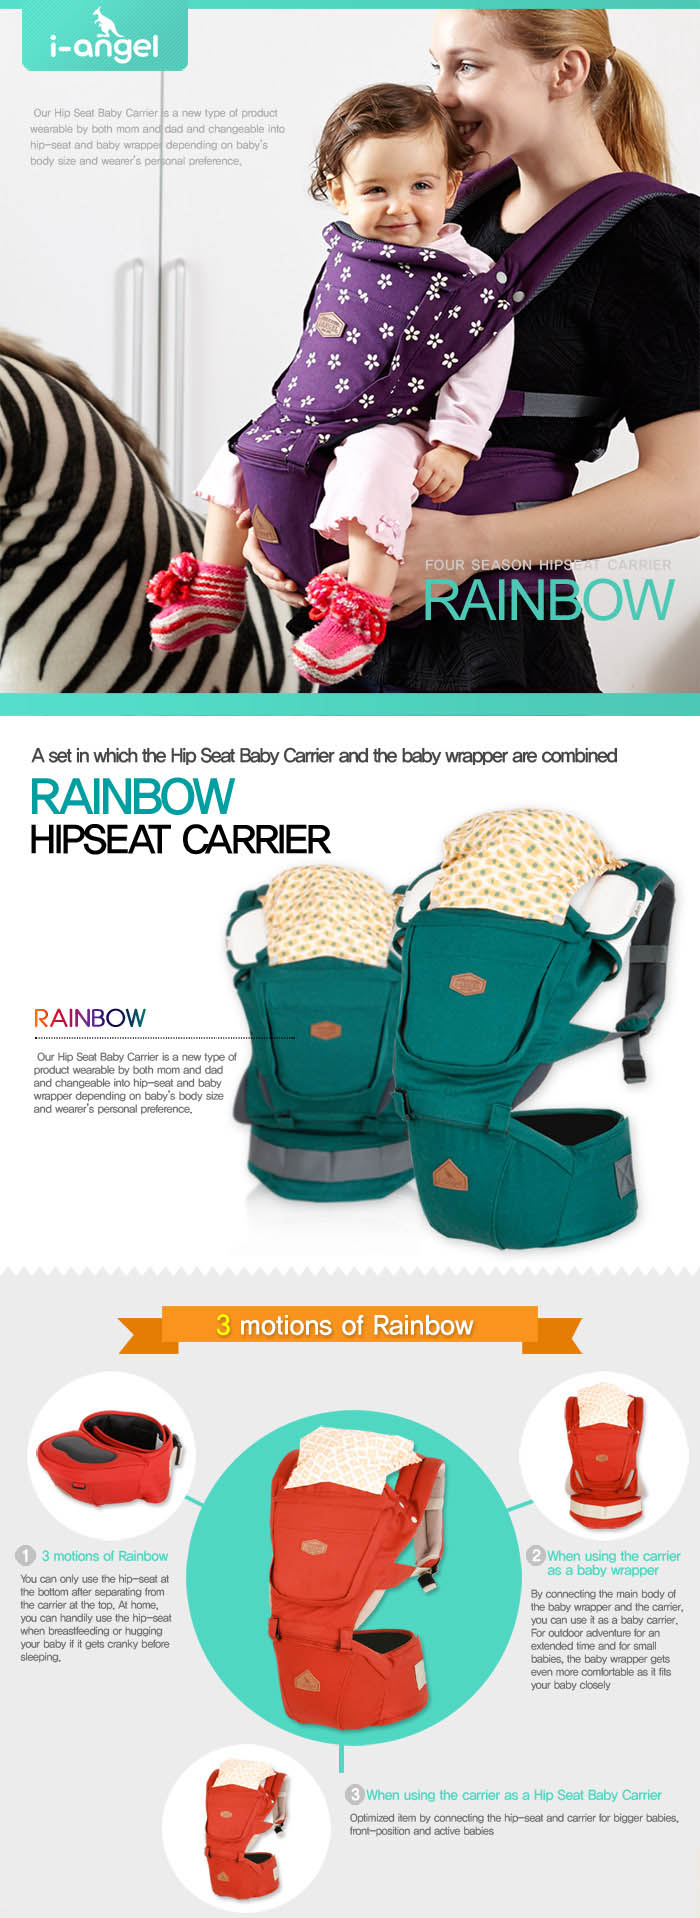 3 in 1 New I-Angel Rainbow Hipseat 5 Colors Hipseat Carrier Baby Carrier